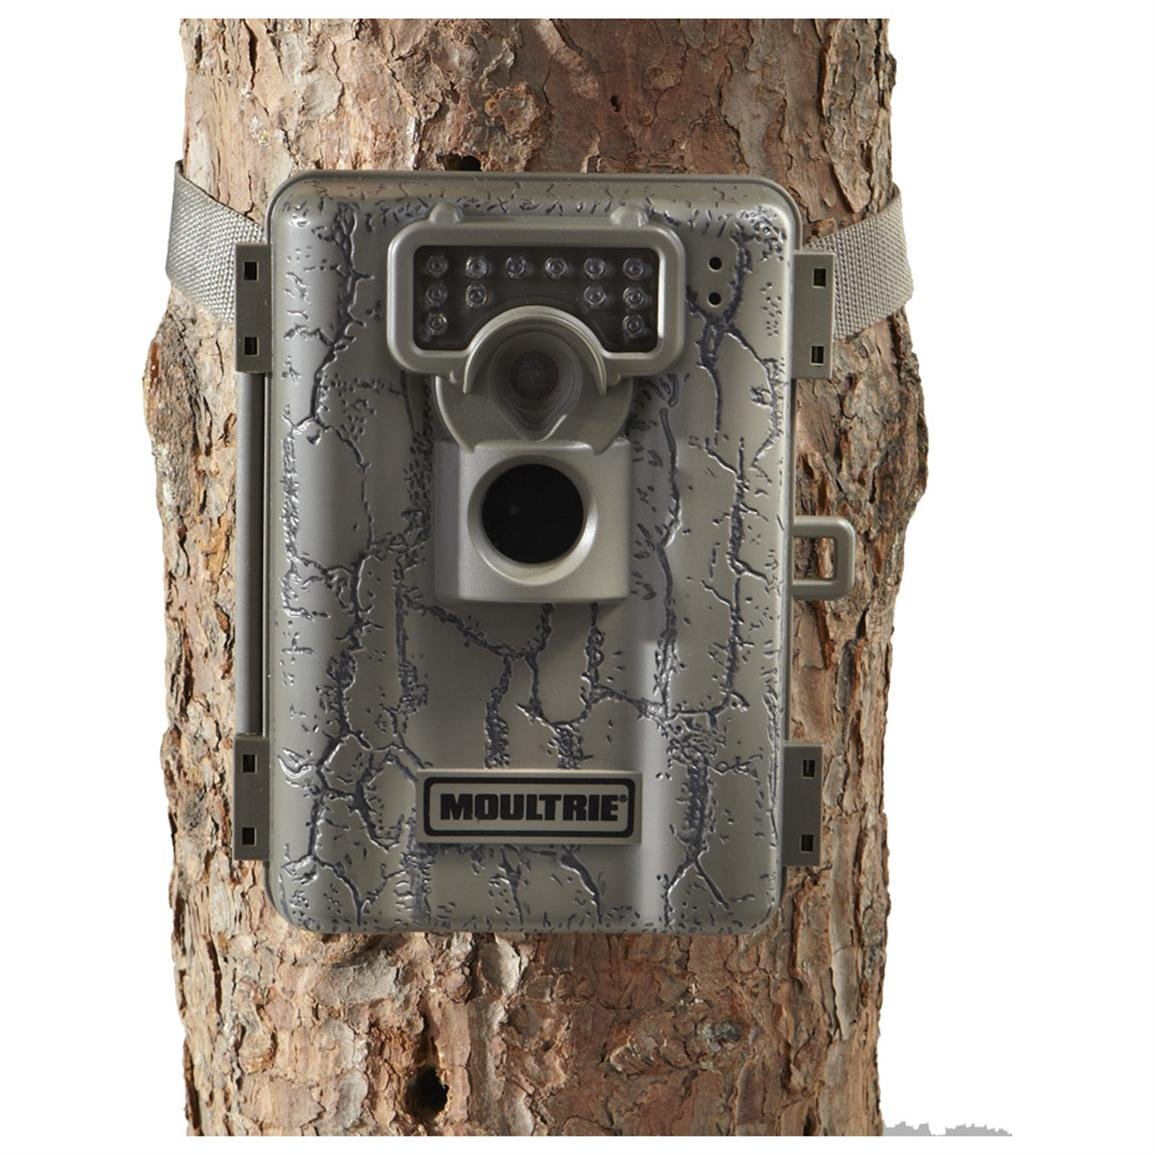 MOULTRIE A-5 GEN2 CAMERA XP